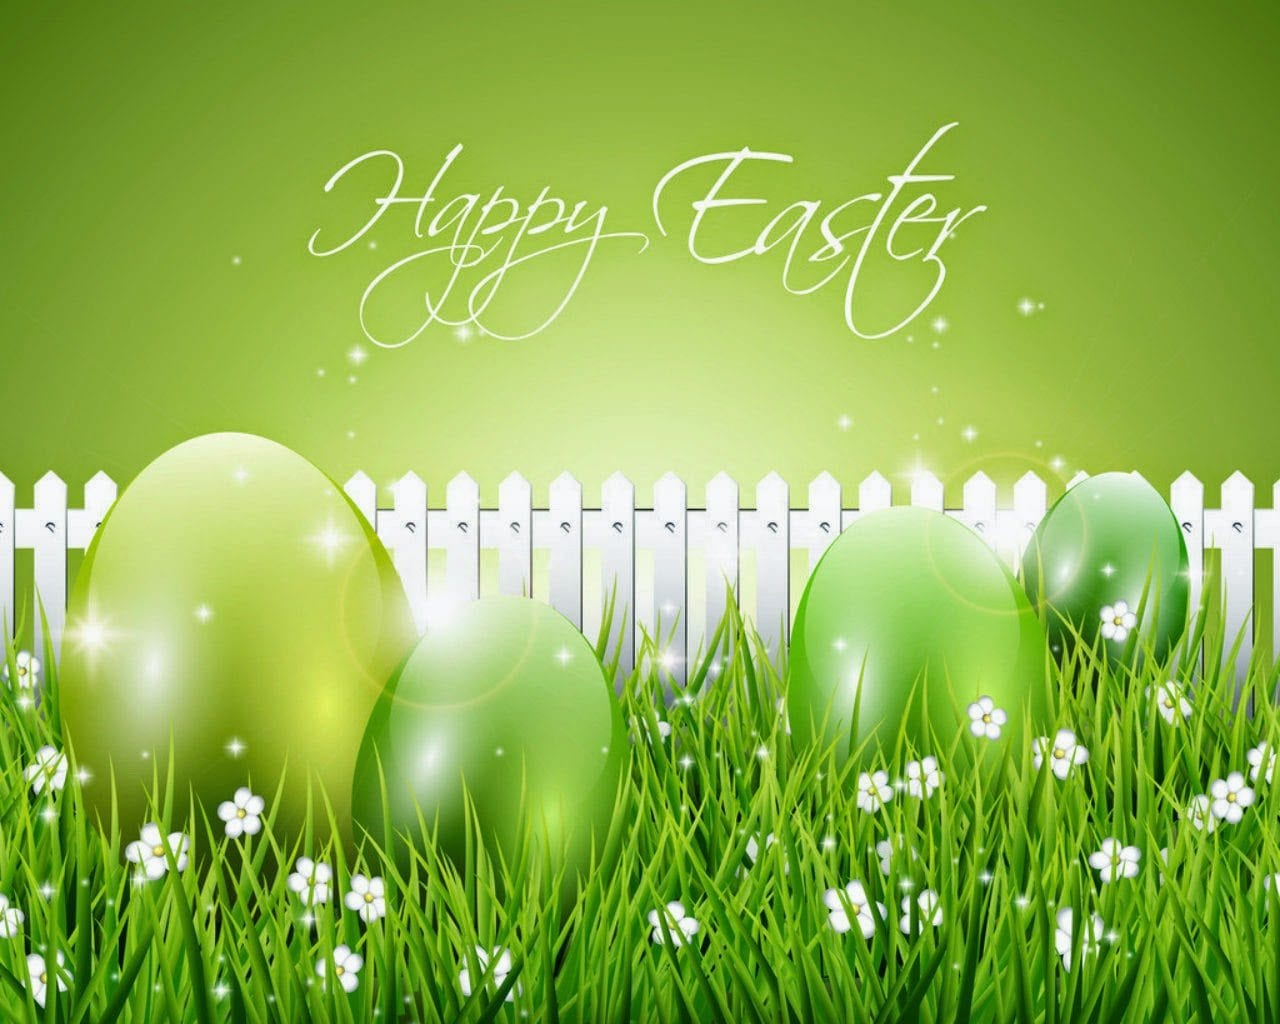 happy-easter-hd-wallpaper-best